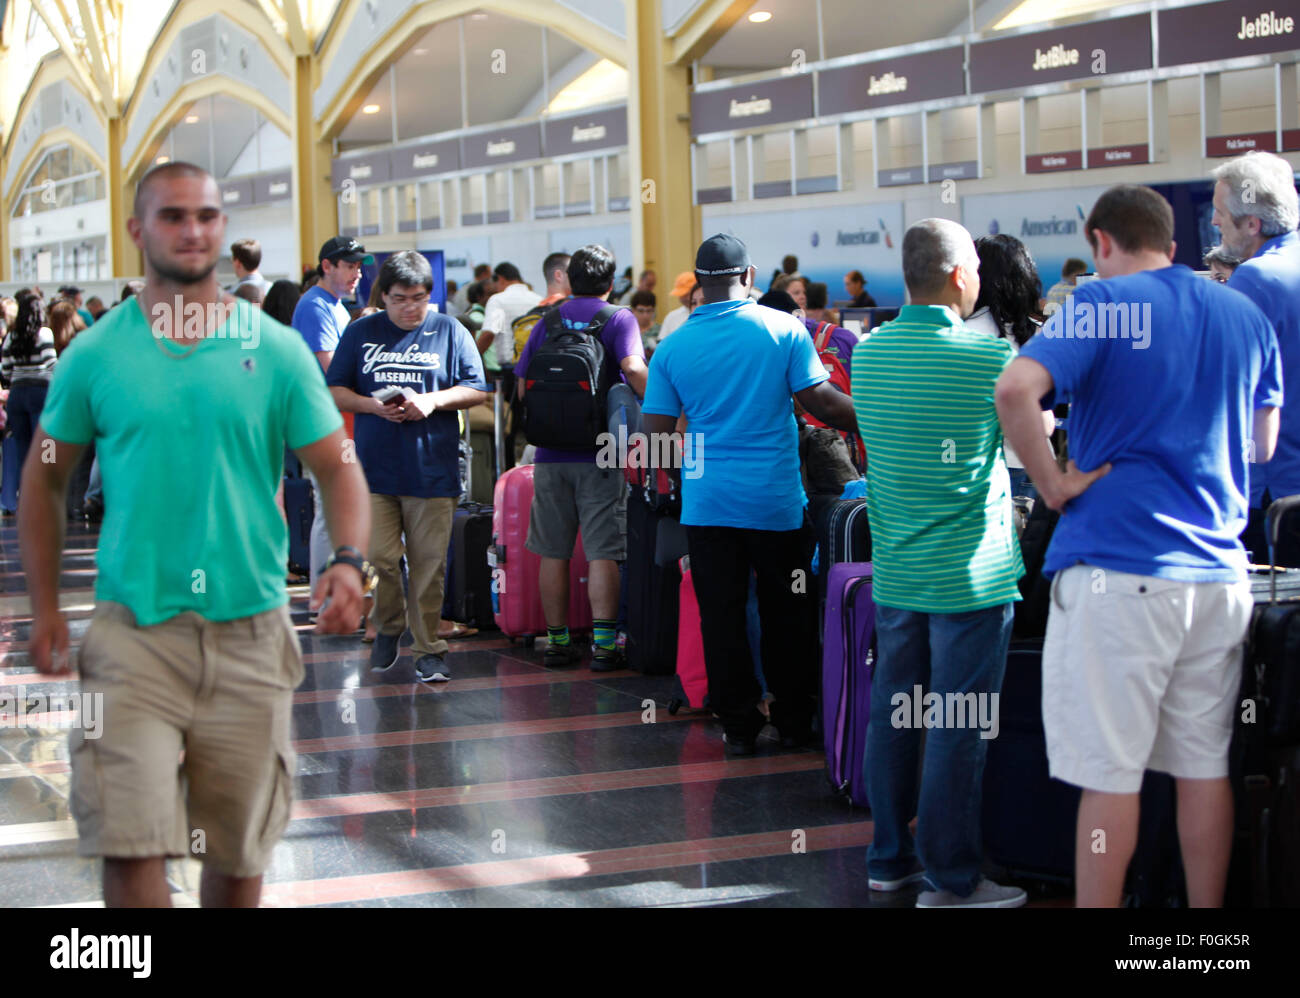 Washington, DC, USA. 15th Aug, 2015. Passengers form a long line waiting to check in at Ronald Regan National Washington - Stock Image